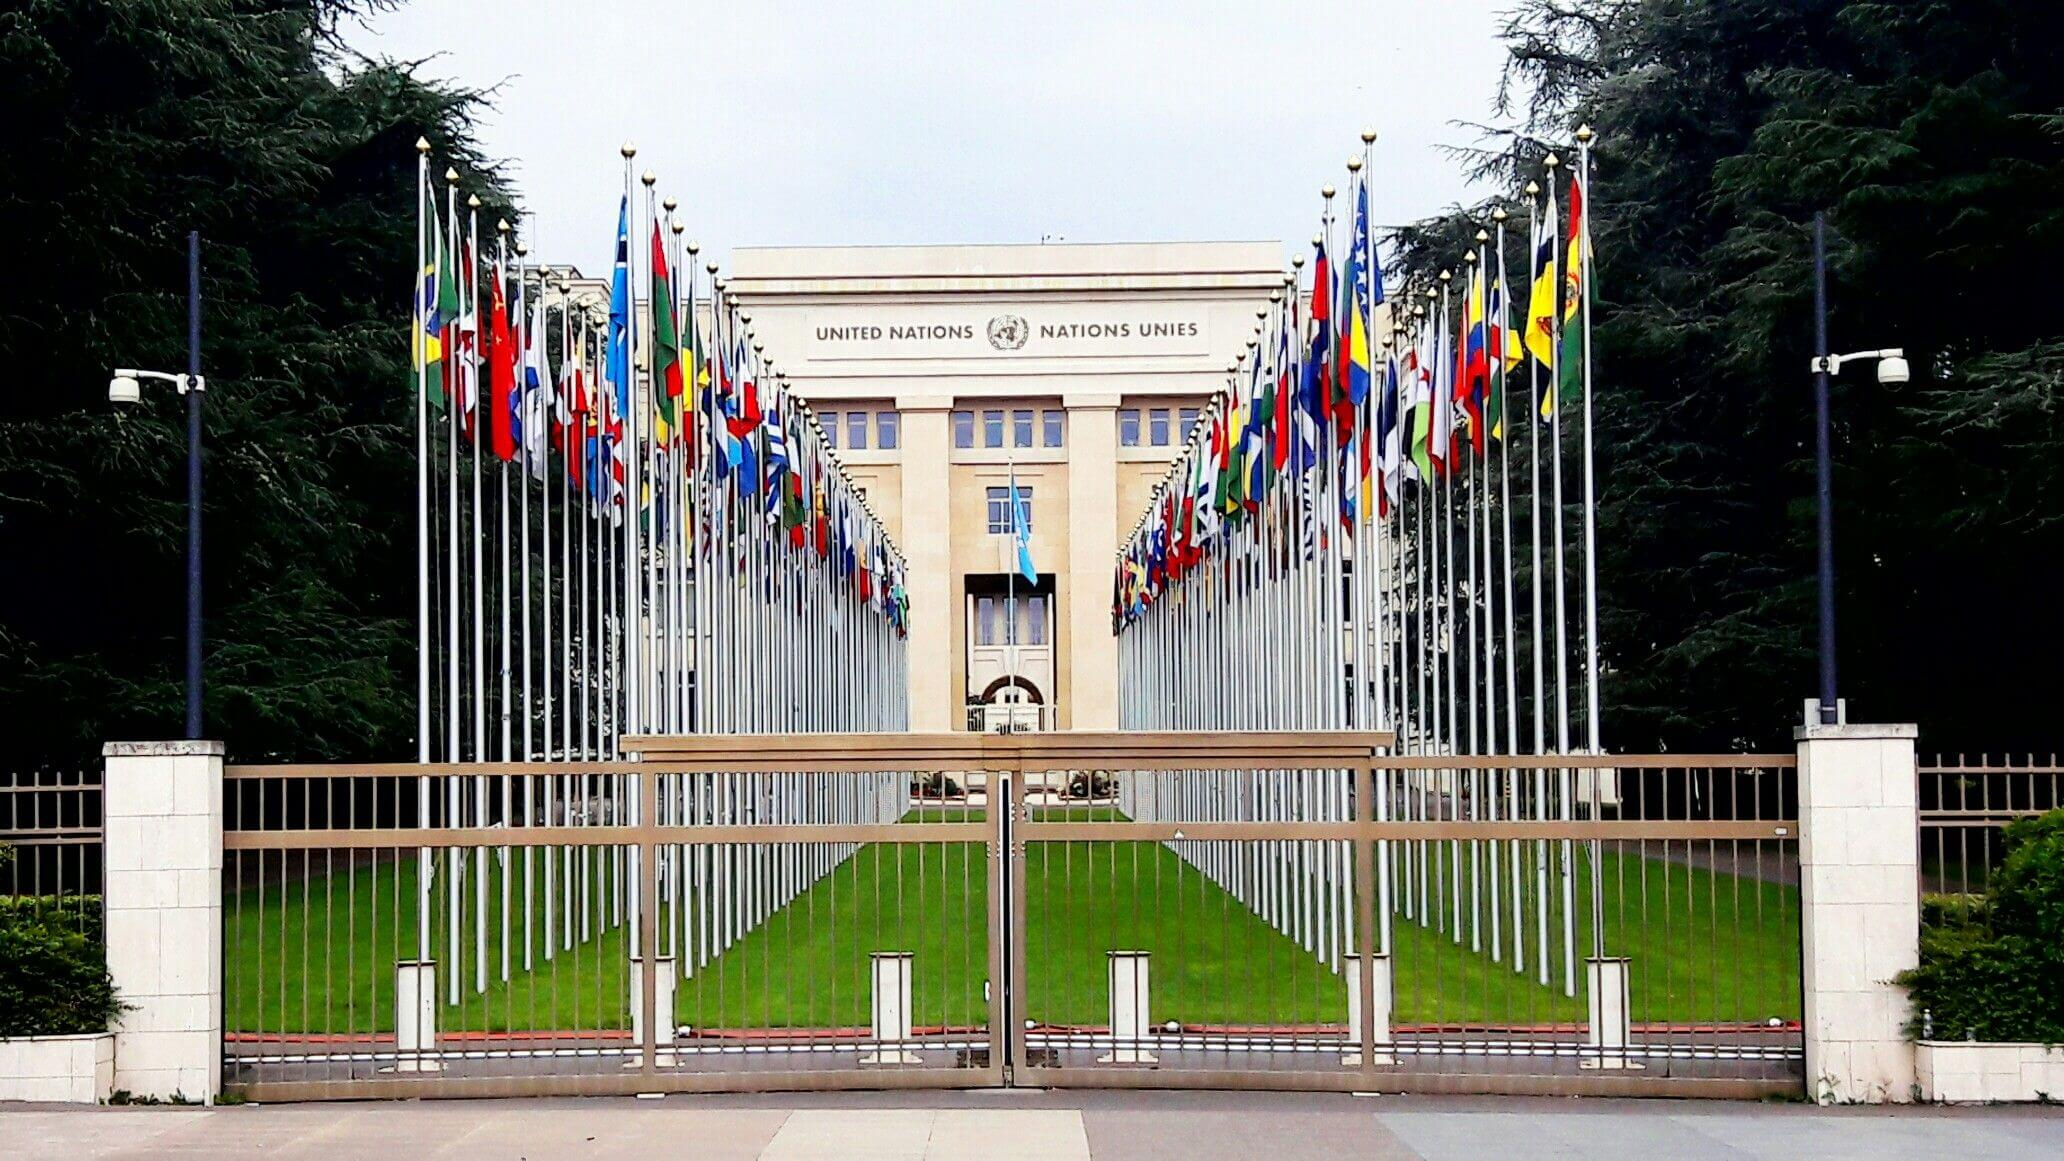 Report reveals hackers infiltrated UN servers in Geneva and Vienna last year